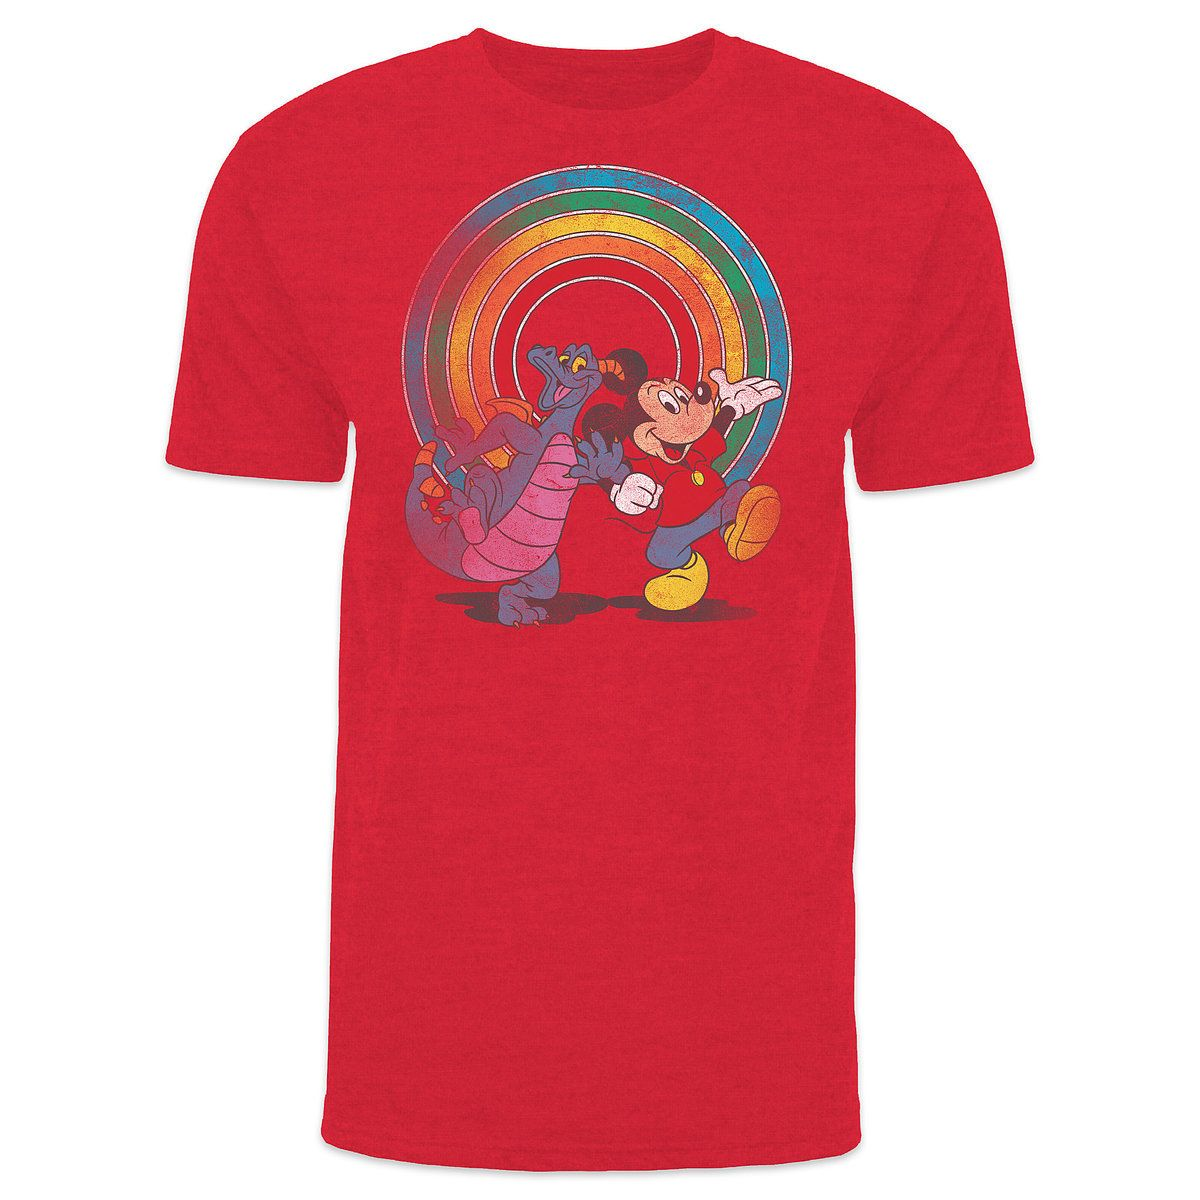 Product Image Of Mickey Mouse And Figment Yesterears T Shirt For Adults Epcot Limited Release Adulting Shirts Womens Disney Shirts Disney Shirts For Family